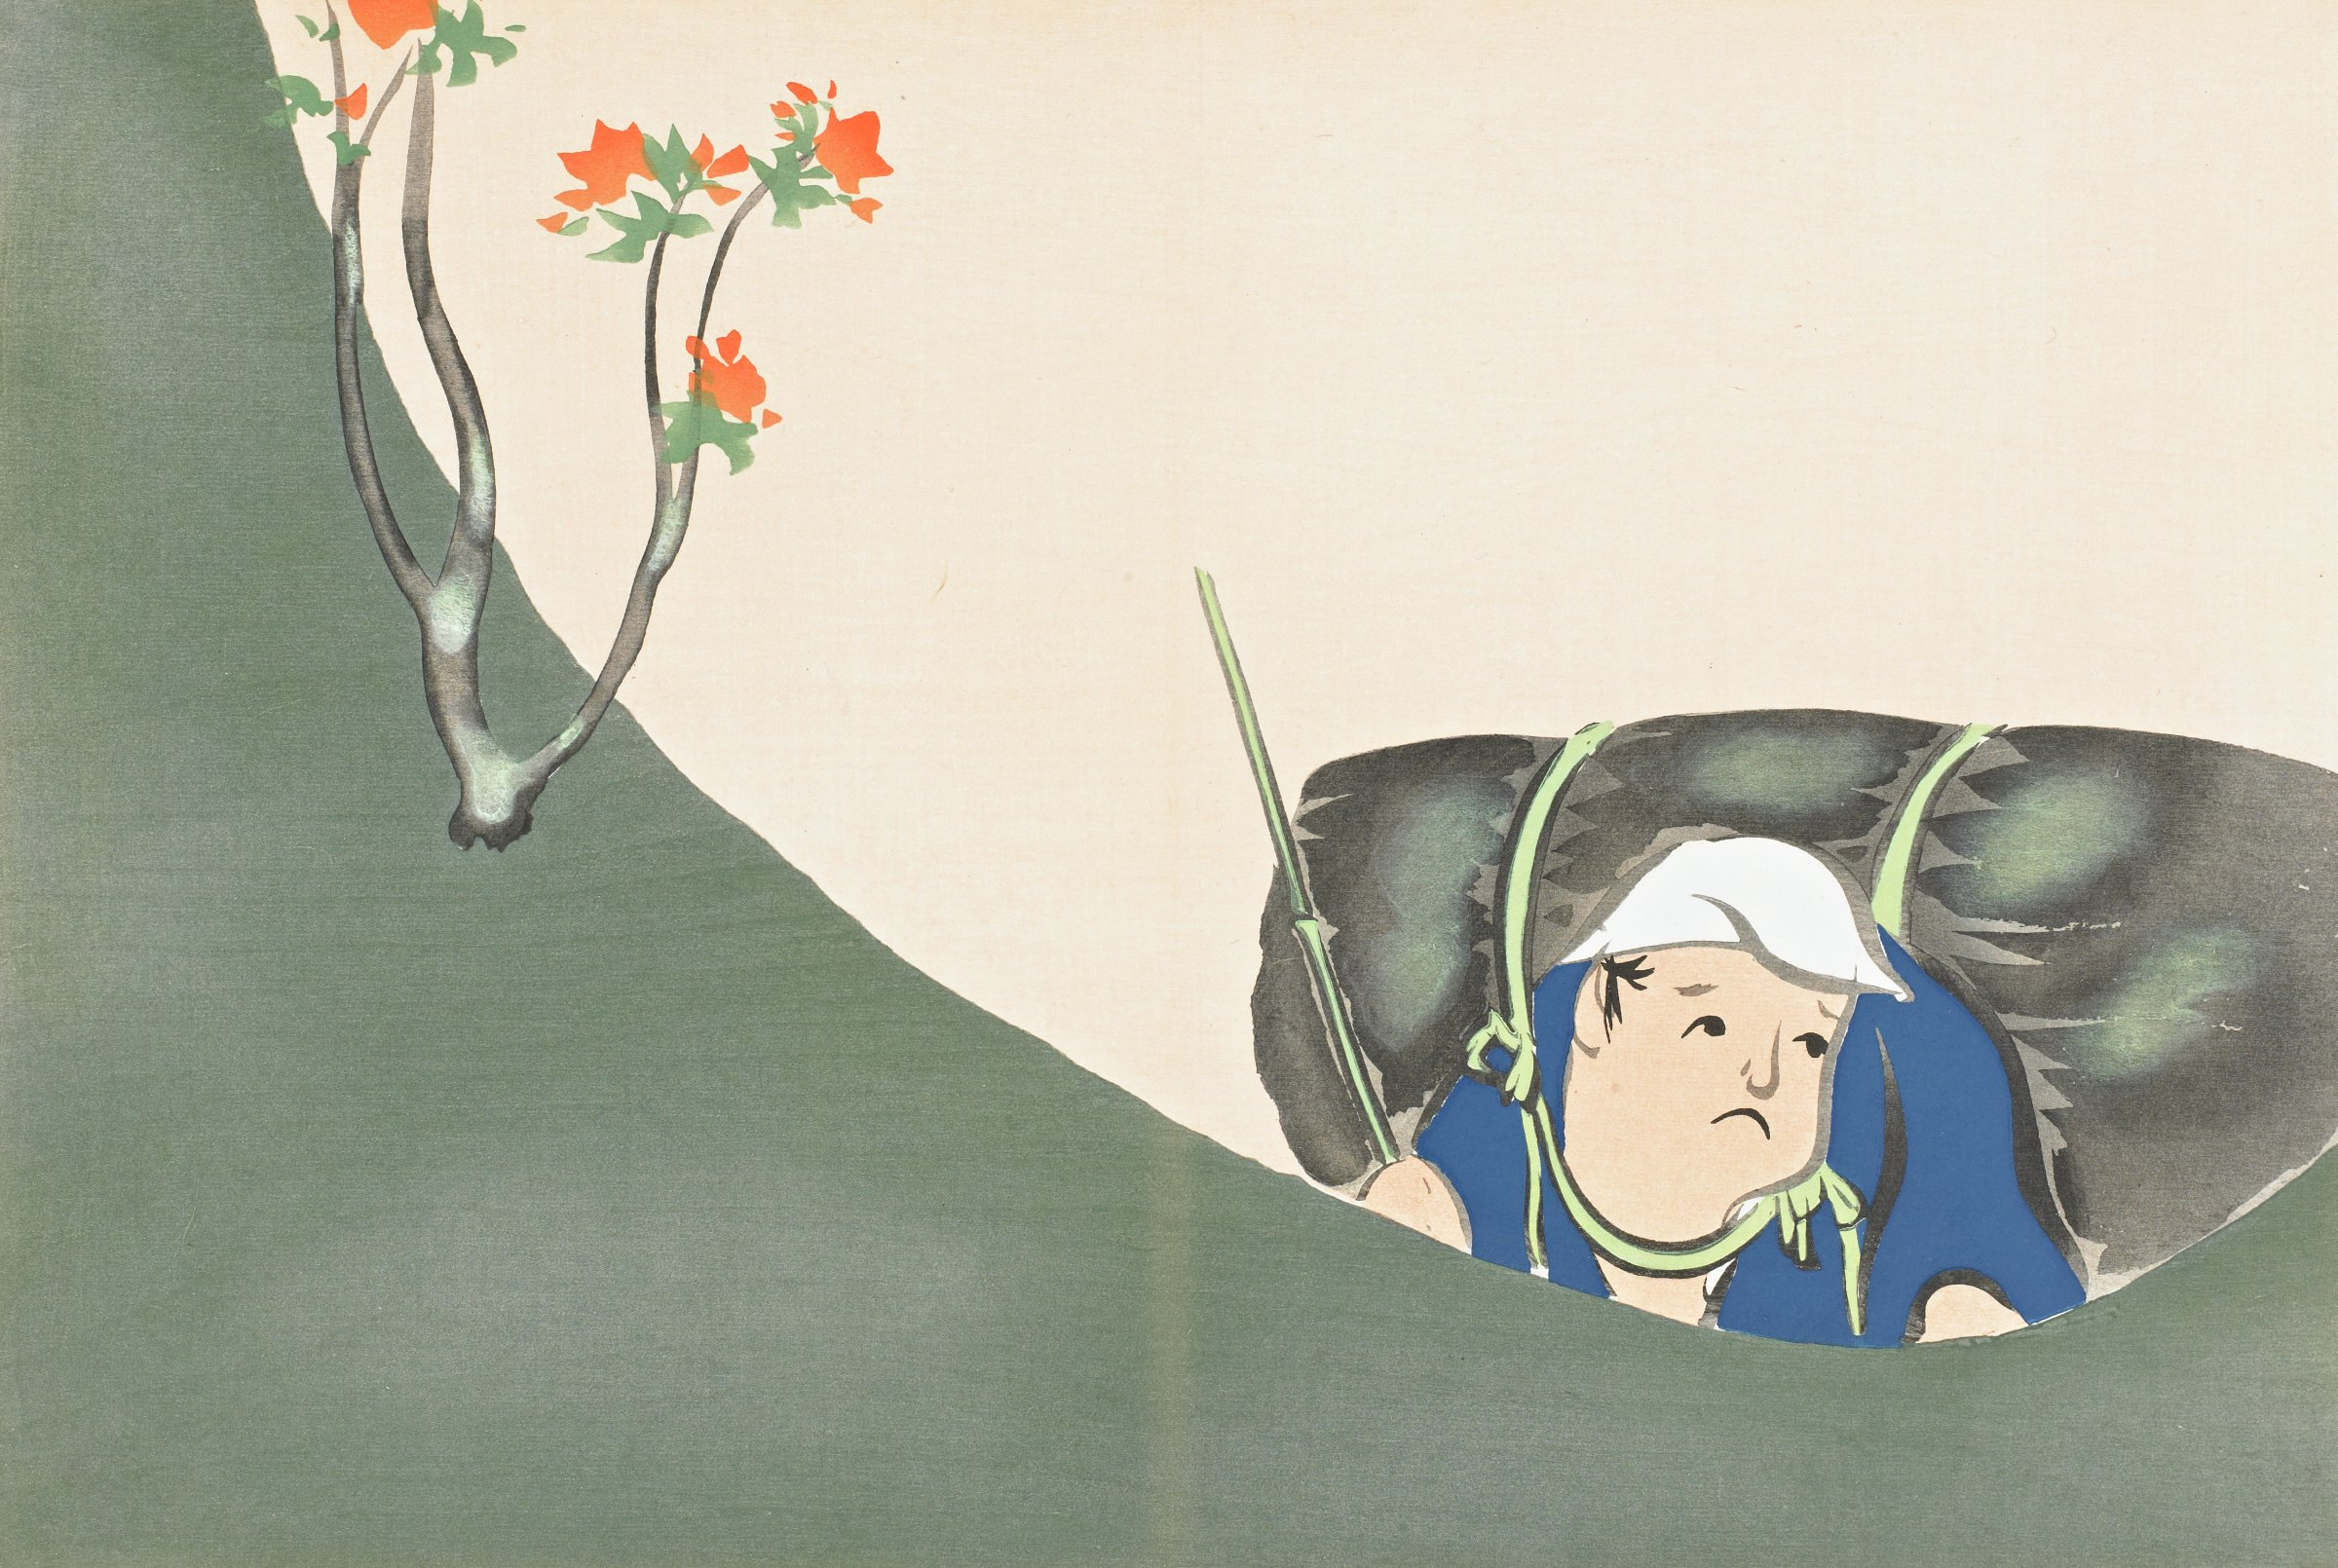 Shofu (A Woodcutter), from Momoyogusa (A World of Things), Volume 2, Kamisaka Sekka, ink and color on paper